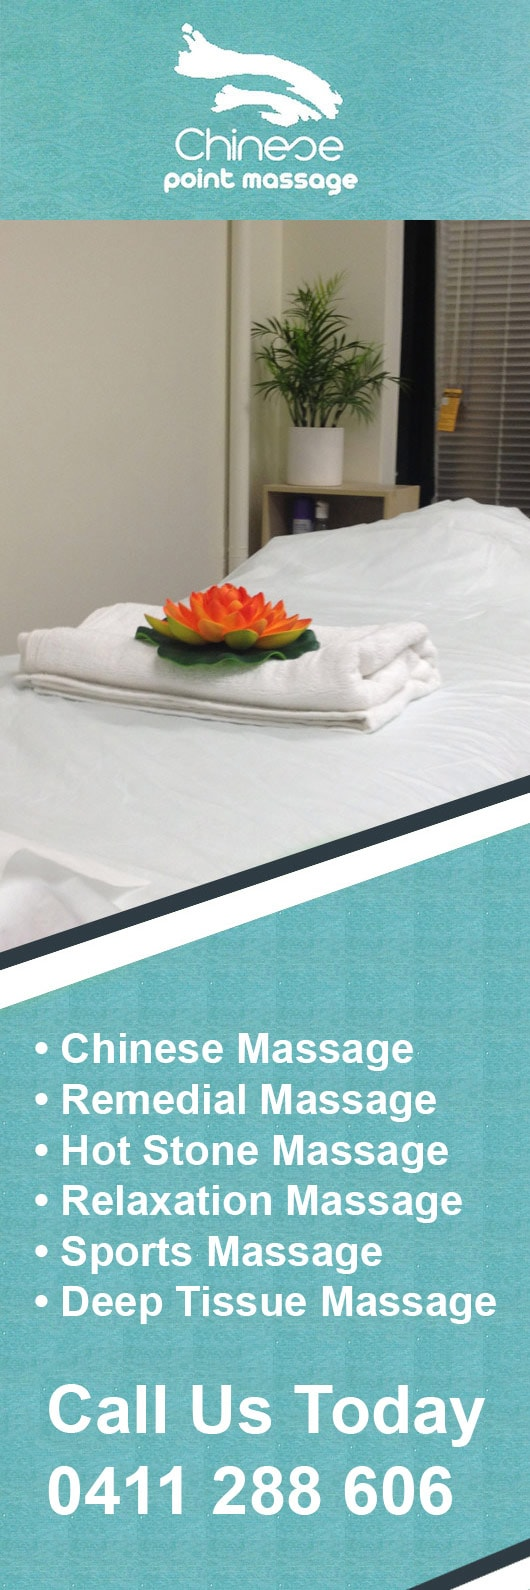 Chinese Point Massage - Promotion